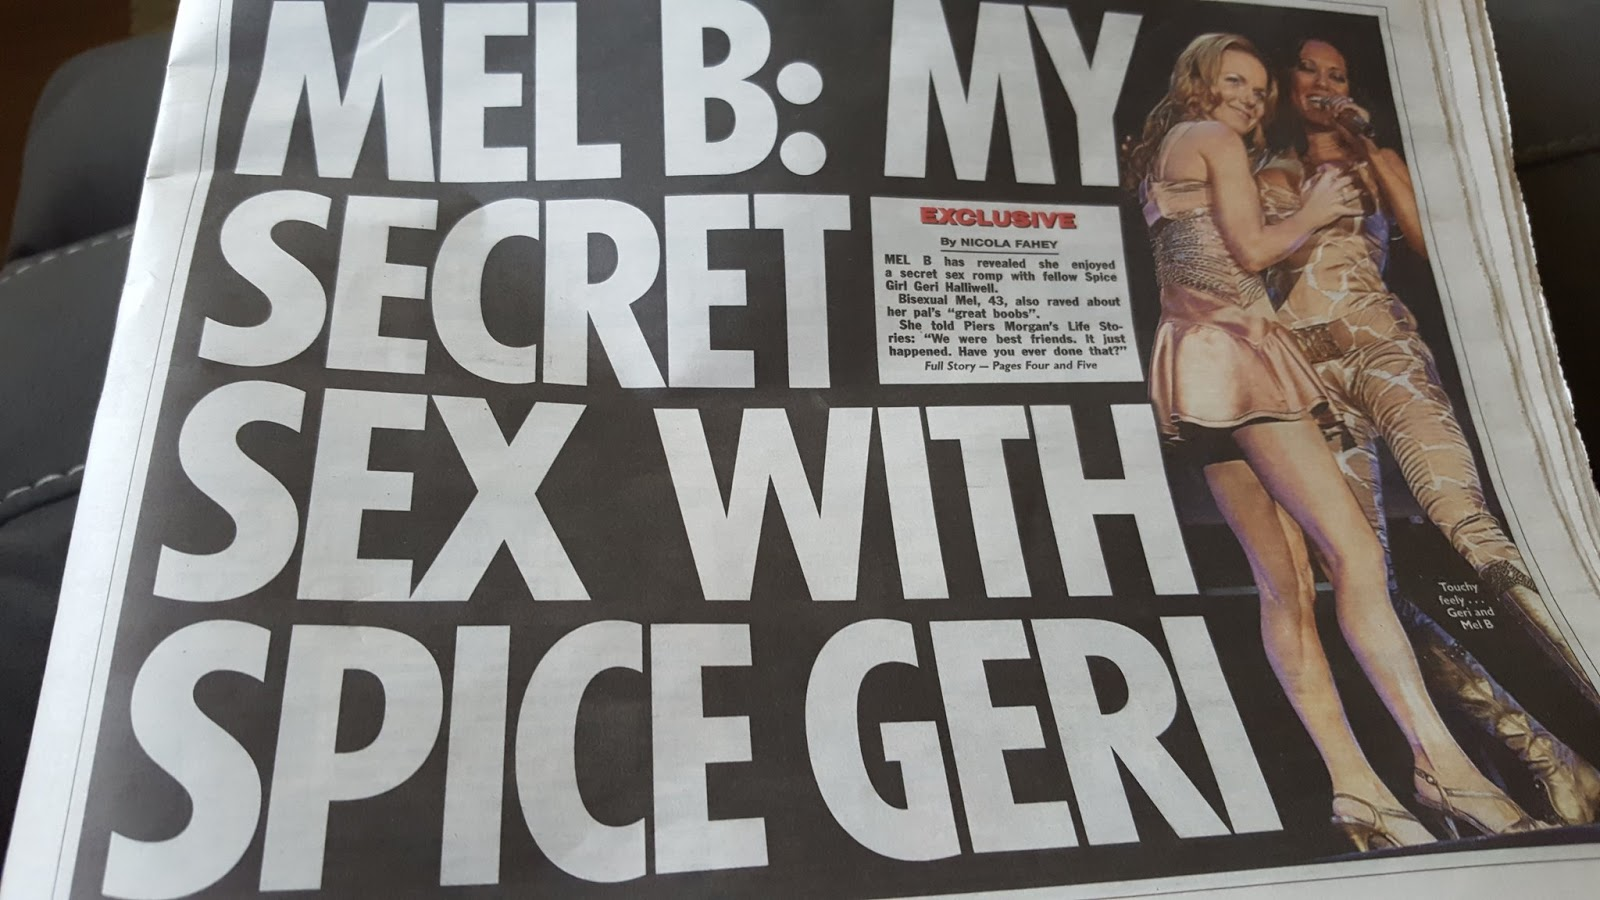 Spice Girl Mel B reveals she had sex with bandmate Ginger Spice